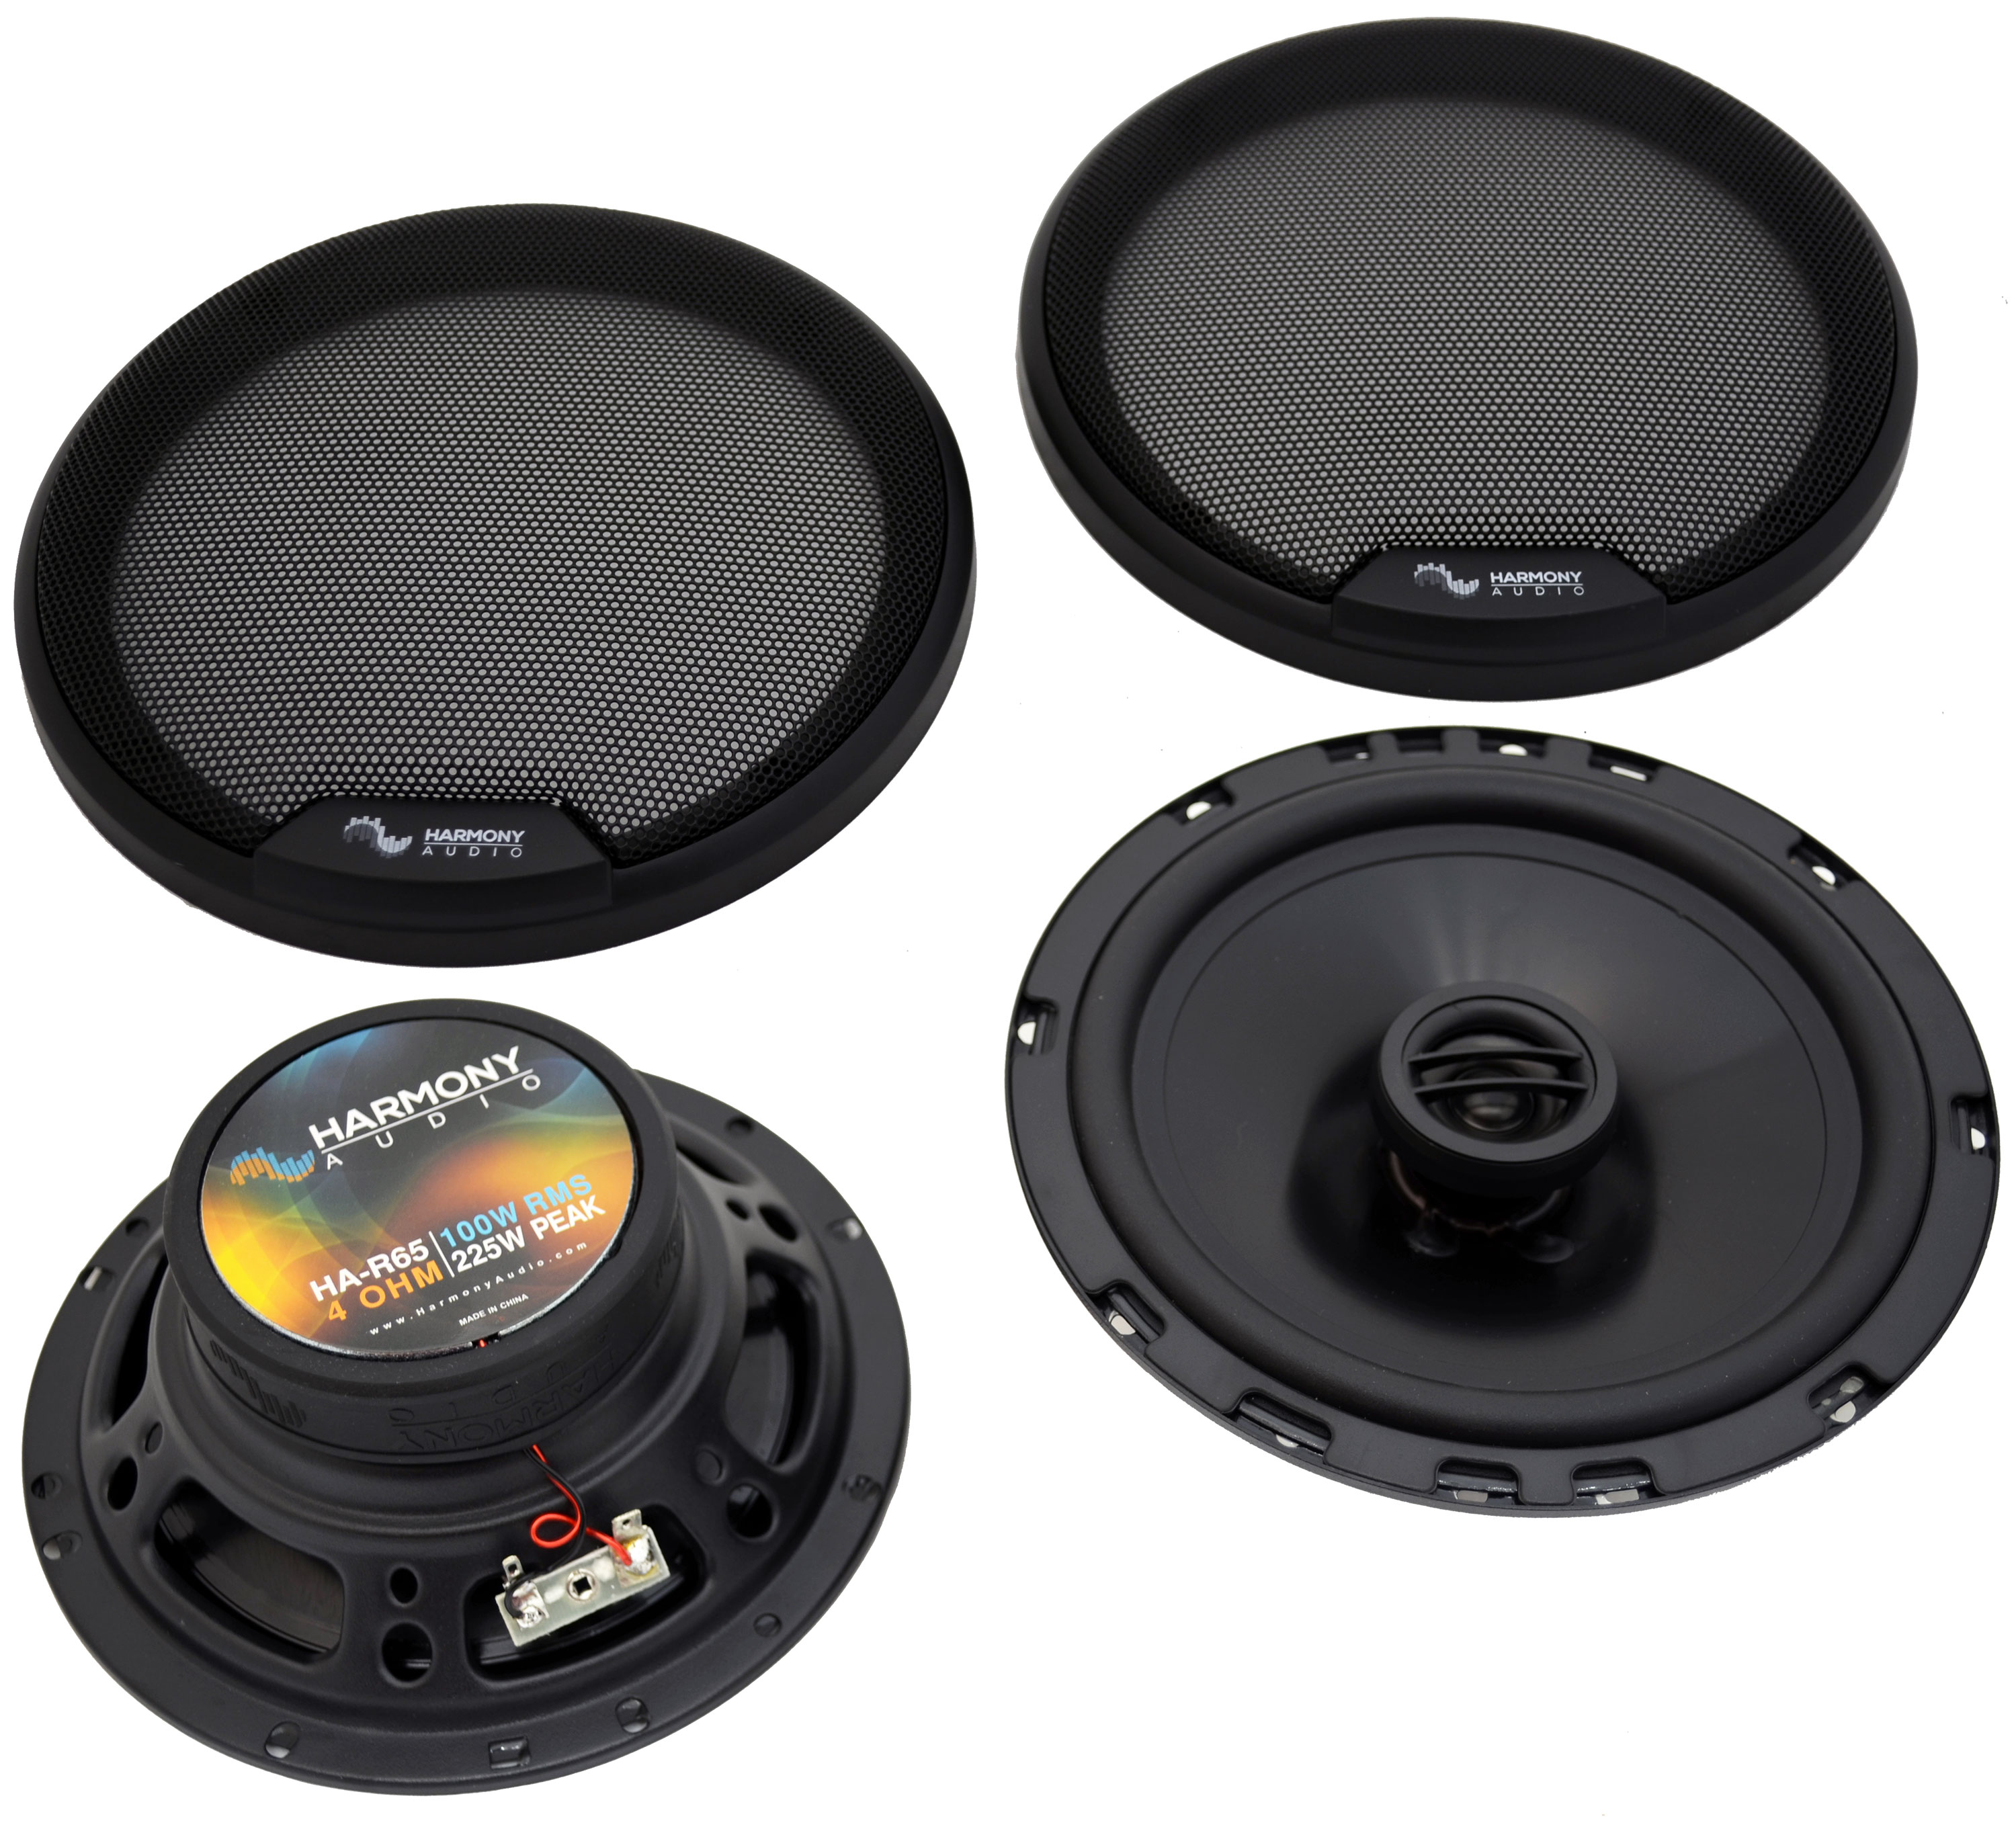 Fits Nissan Sentra 2000-2006 Rear Deck Replacement Harmony HA-R65 Speakers New